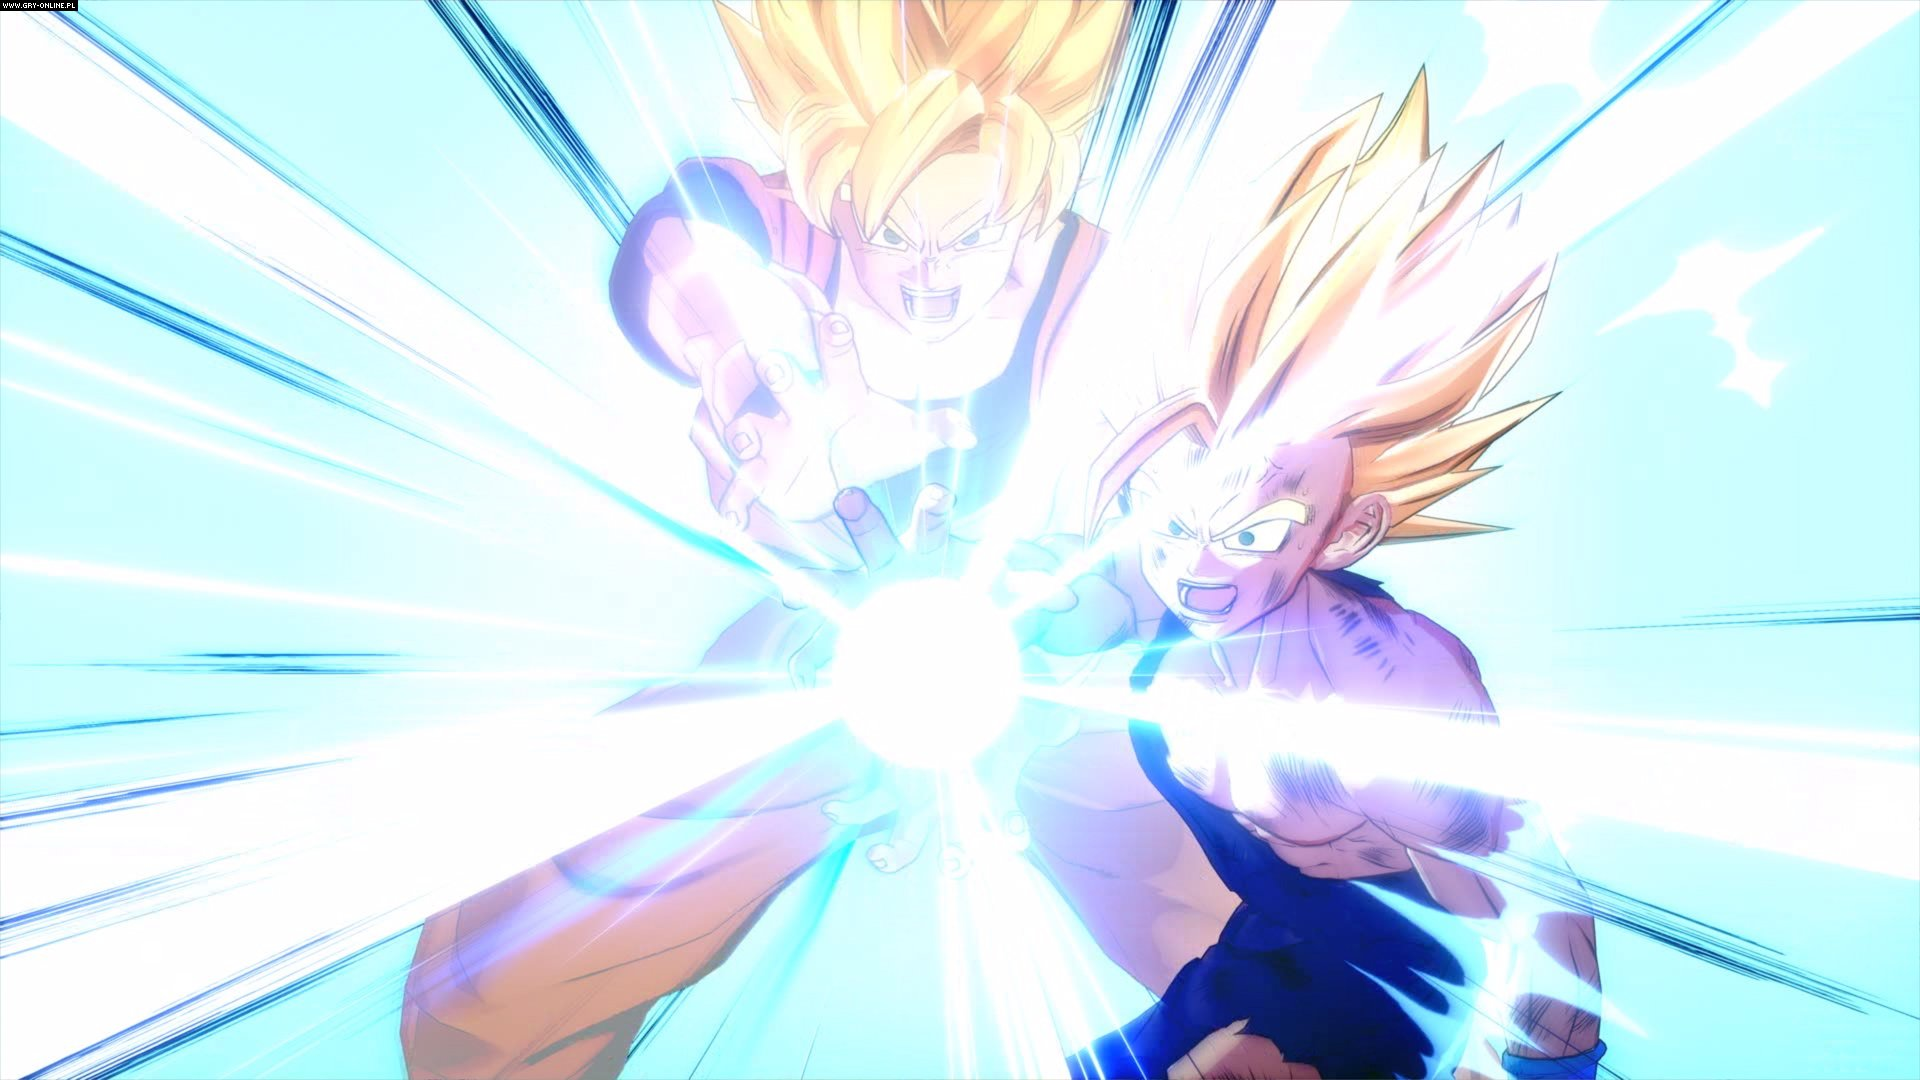 Dragon Ball Z: Kakarot PC, PS4, XONE Games Image 25/45, Cyberconnect2, Bandai Namco Entertainment